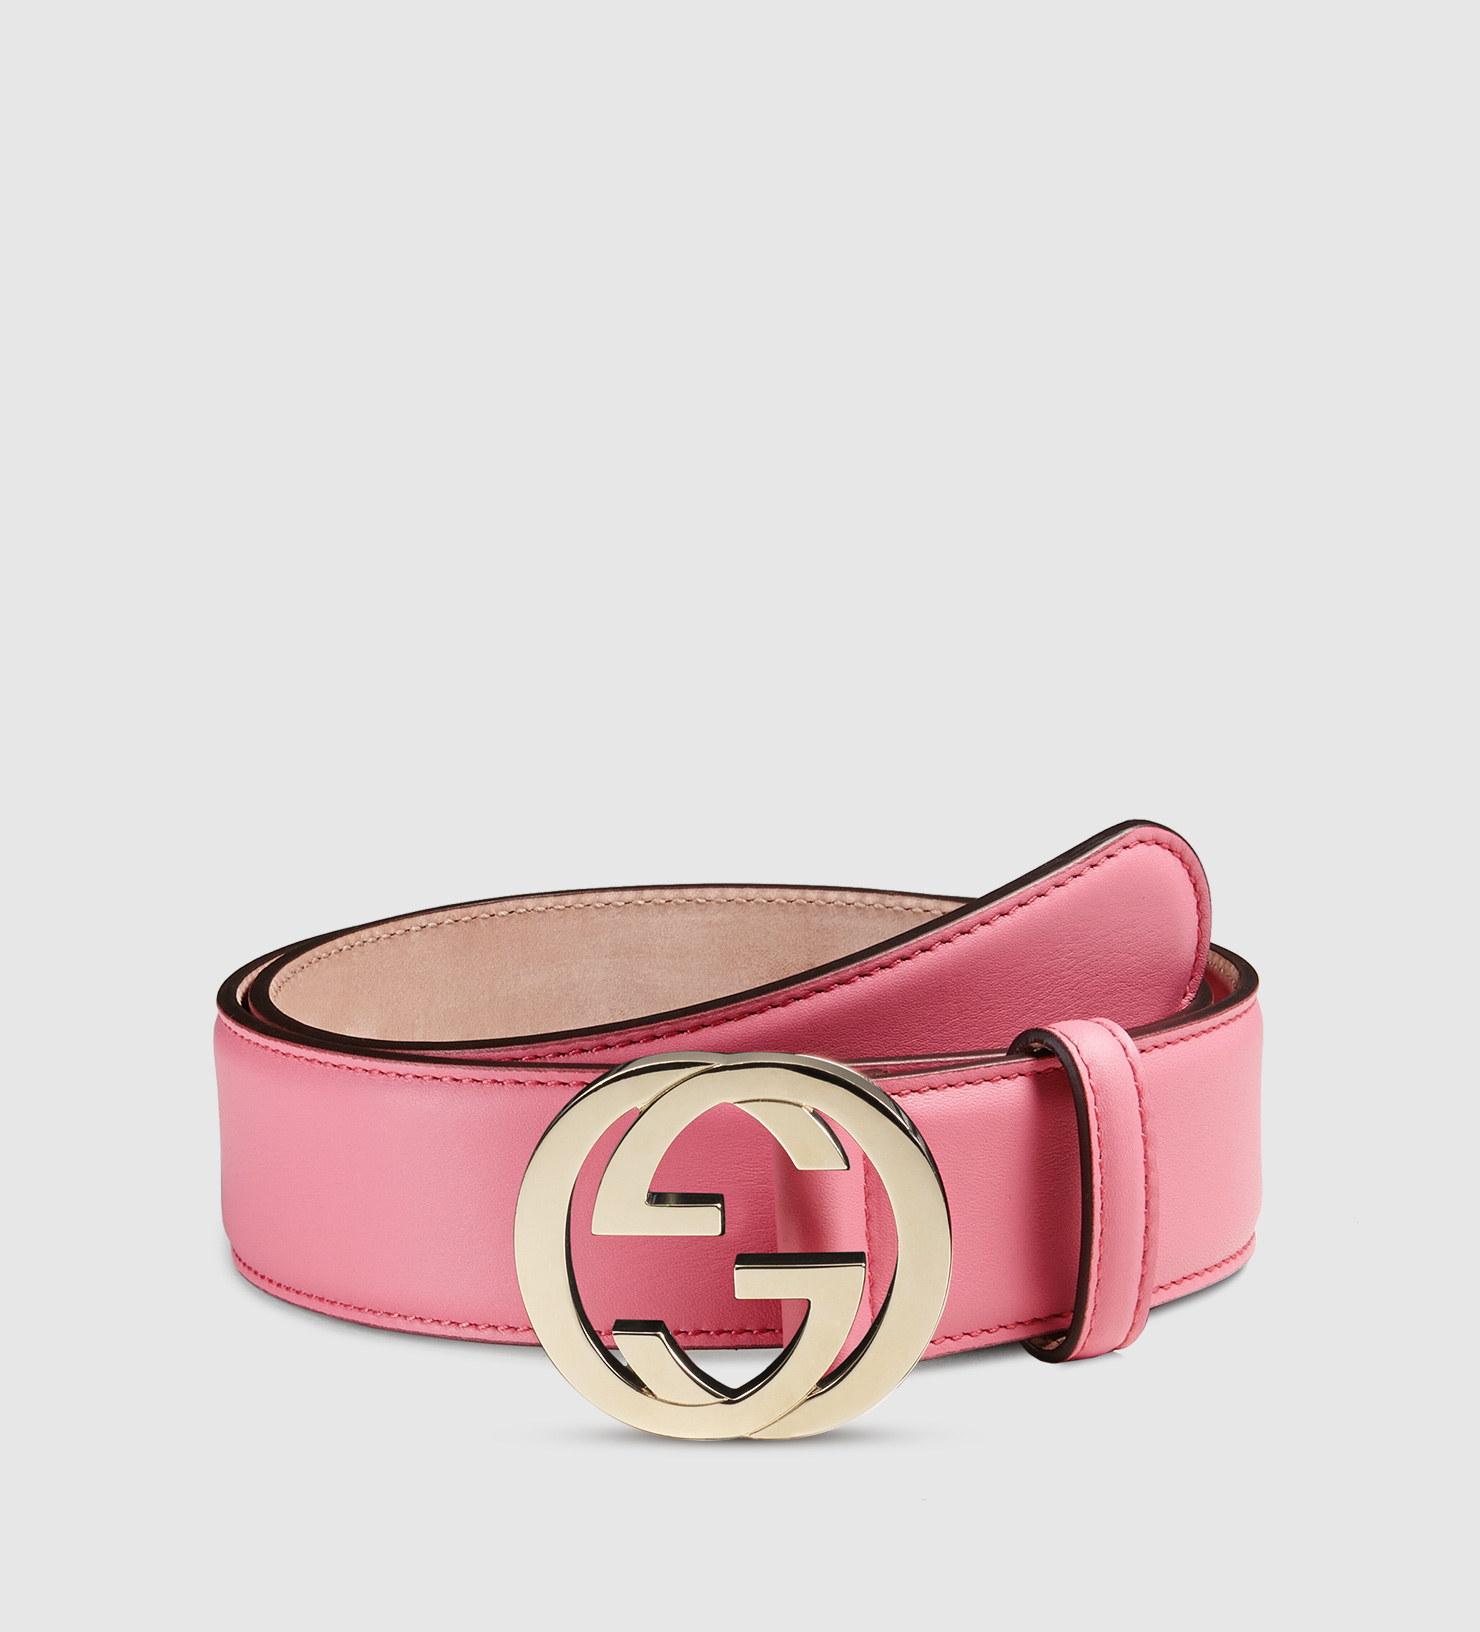 Gucci Leather Belt With Interlocking G Buckle in Pink